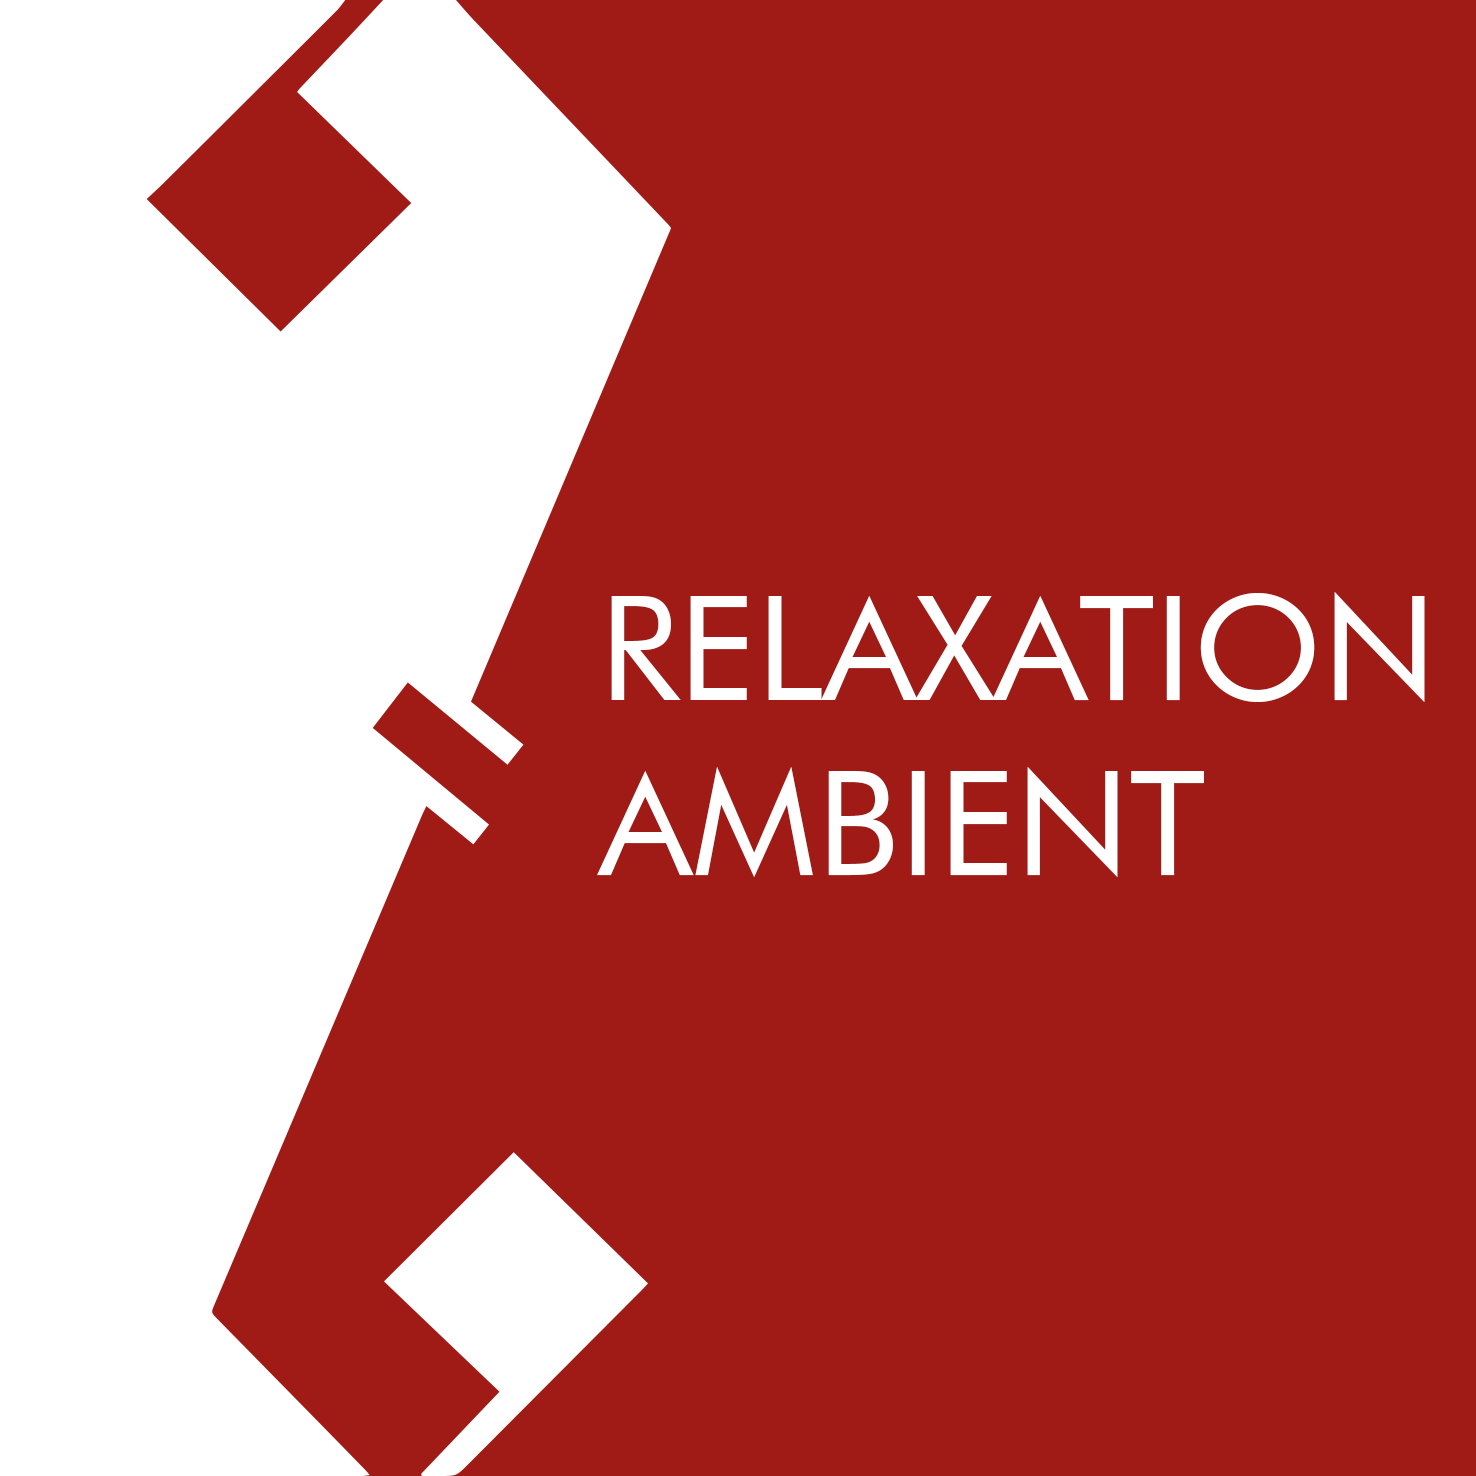 RELAXATION - AMBIENT